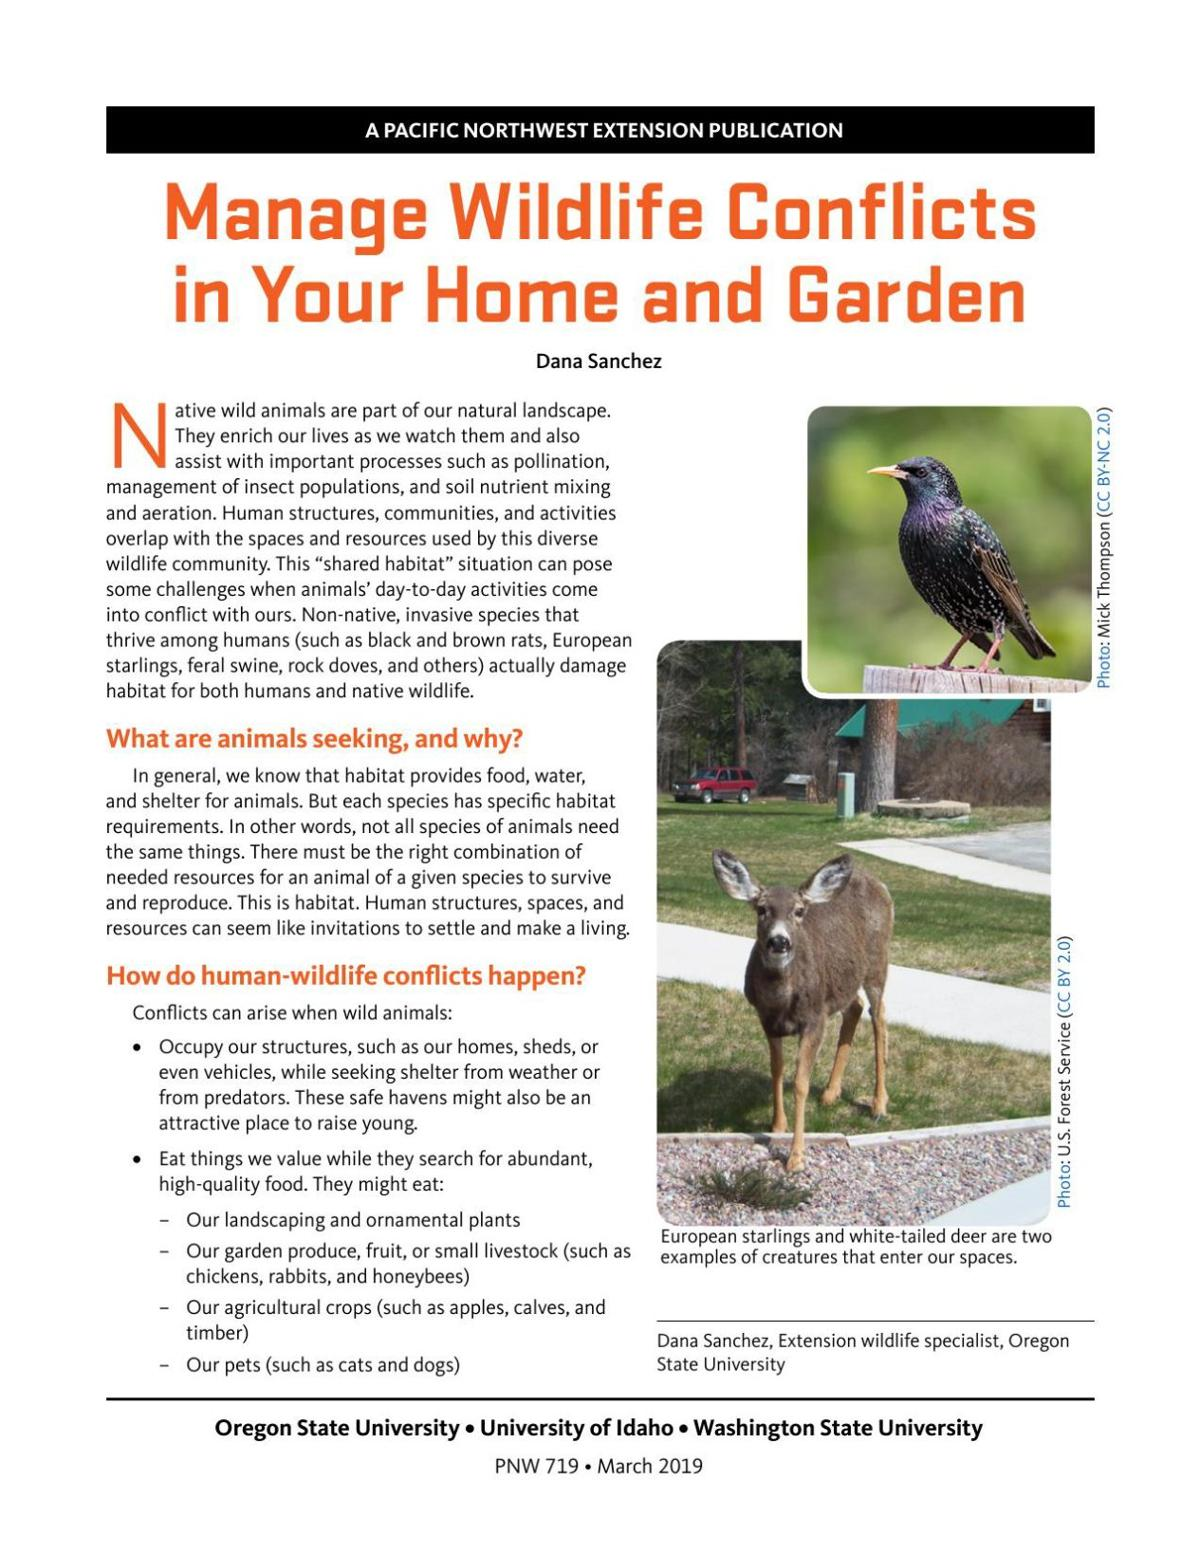 Manage Wildlife Conflicts in Your Home and Garden